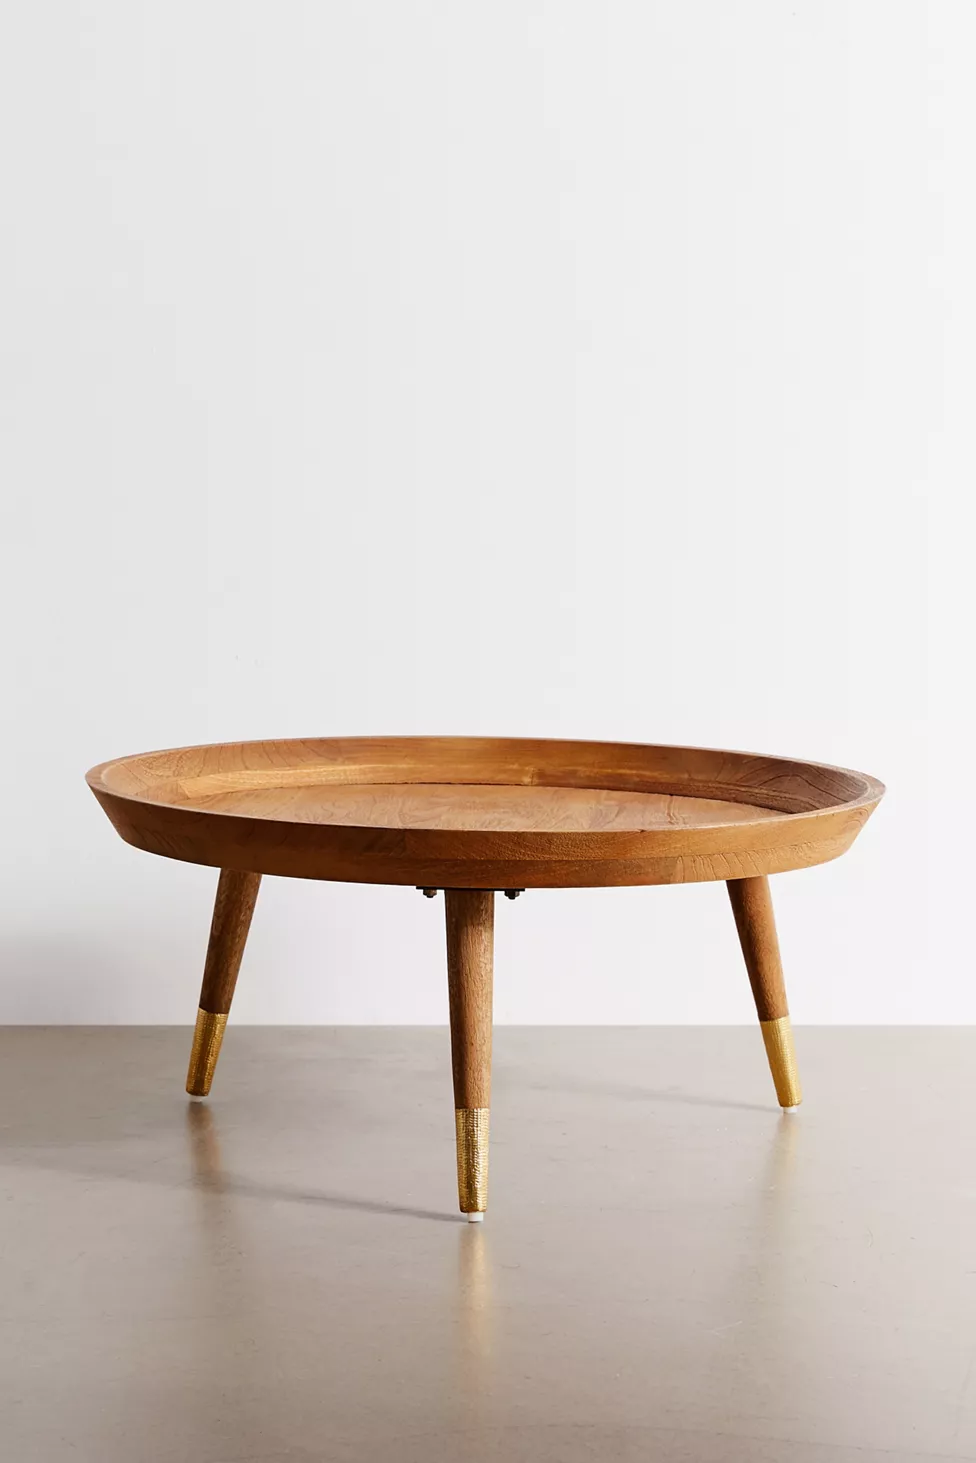 Estelle Coffee Table Coffee Table Coffee Table Urban Outfitters Round Wooden Coffee Table [ 1463 x 976 Pixel ]